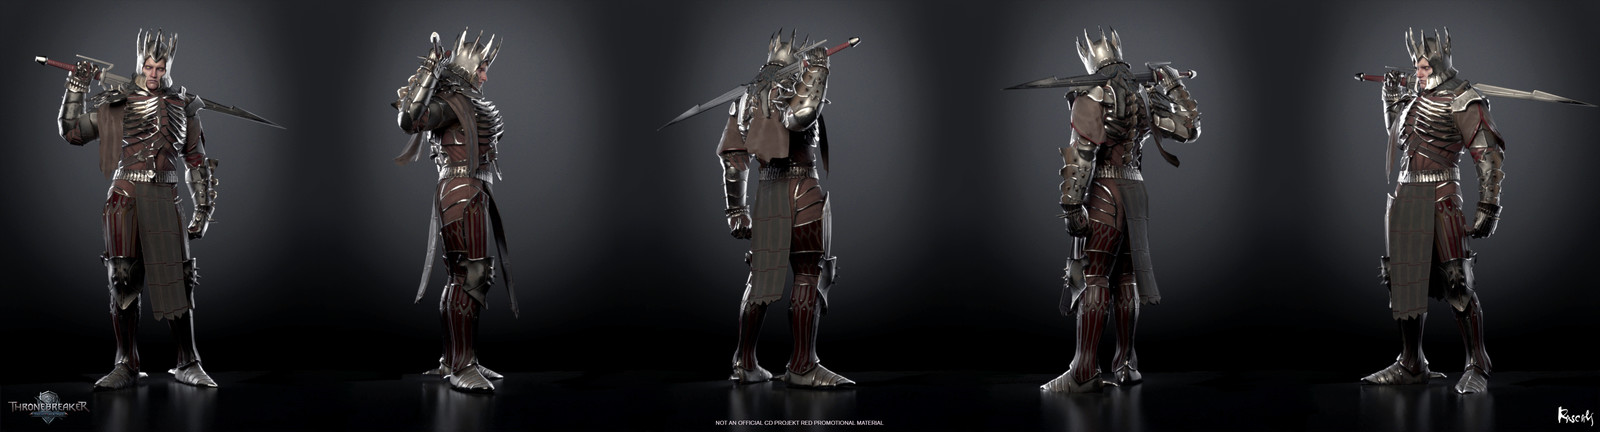 Artist: Stas Ostrikov Art Director: Roman Mindek, Producer: Tom Roller.  Poses created from rigs and animation by CD PROJEKT RED. Check out more from Rascals at www.rascals.studio